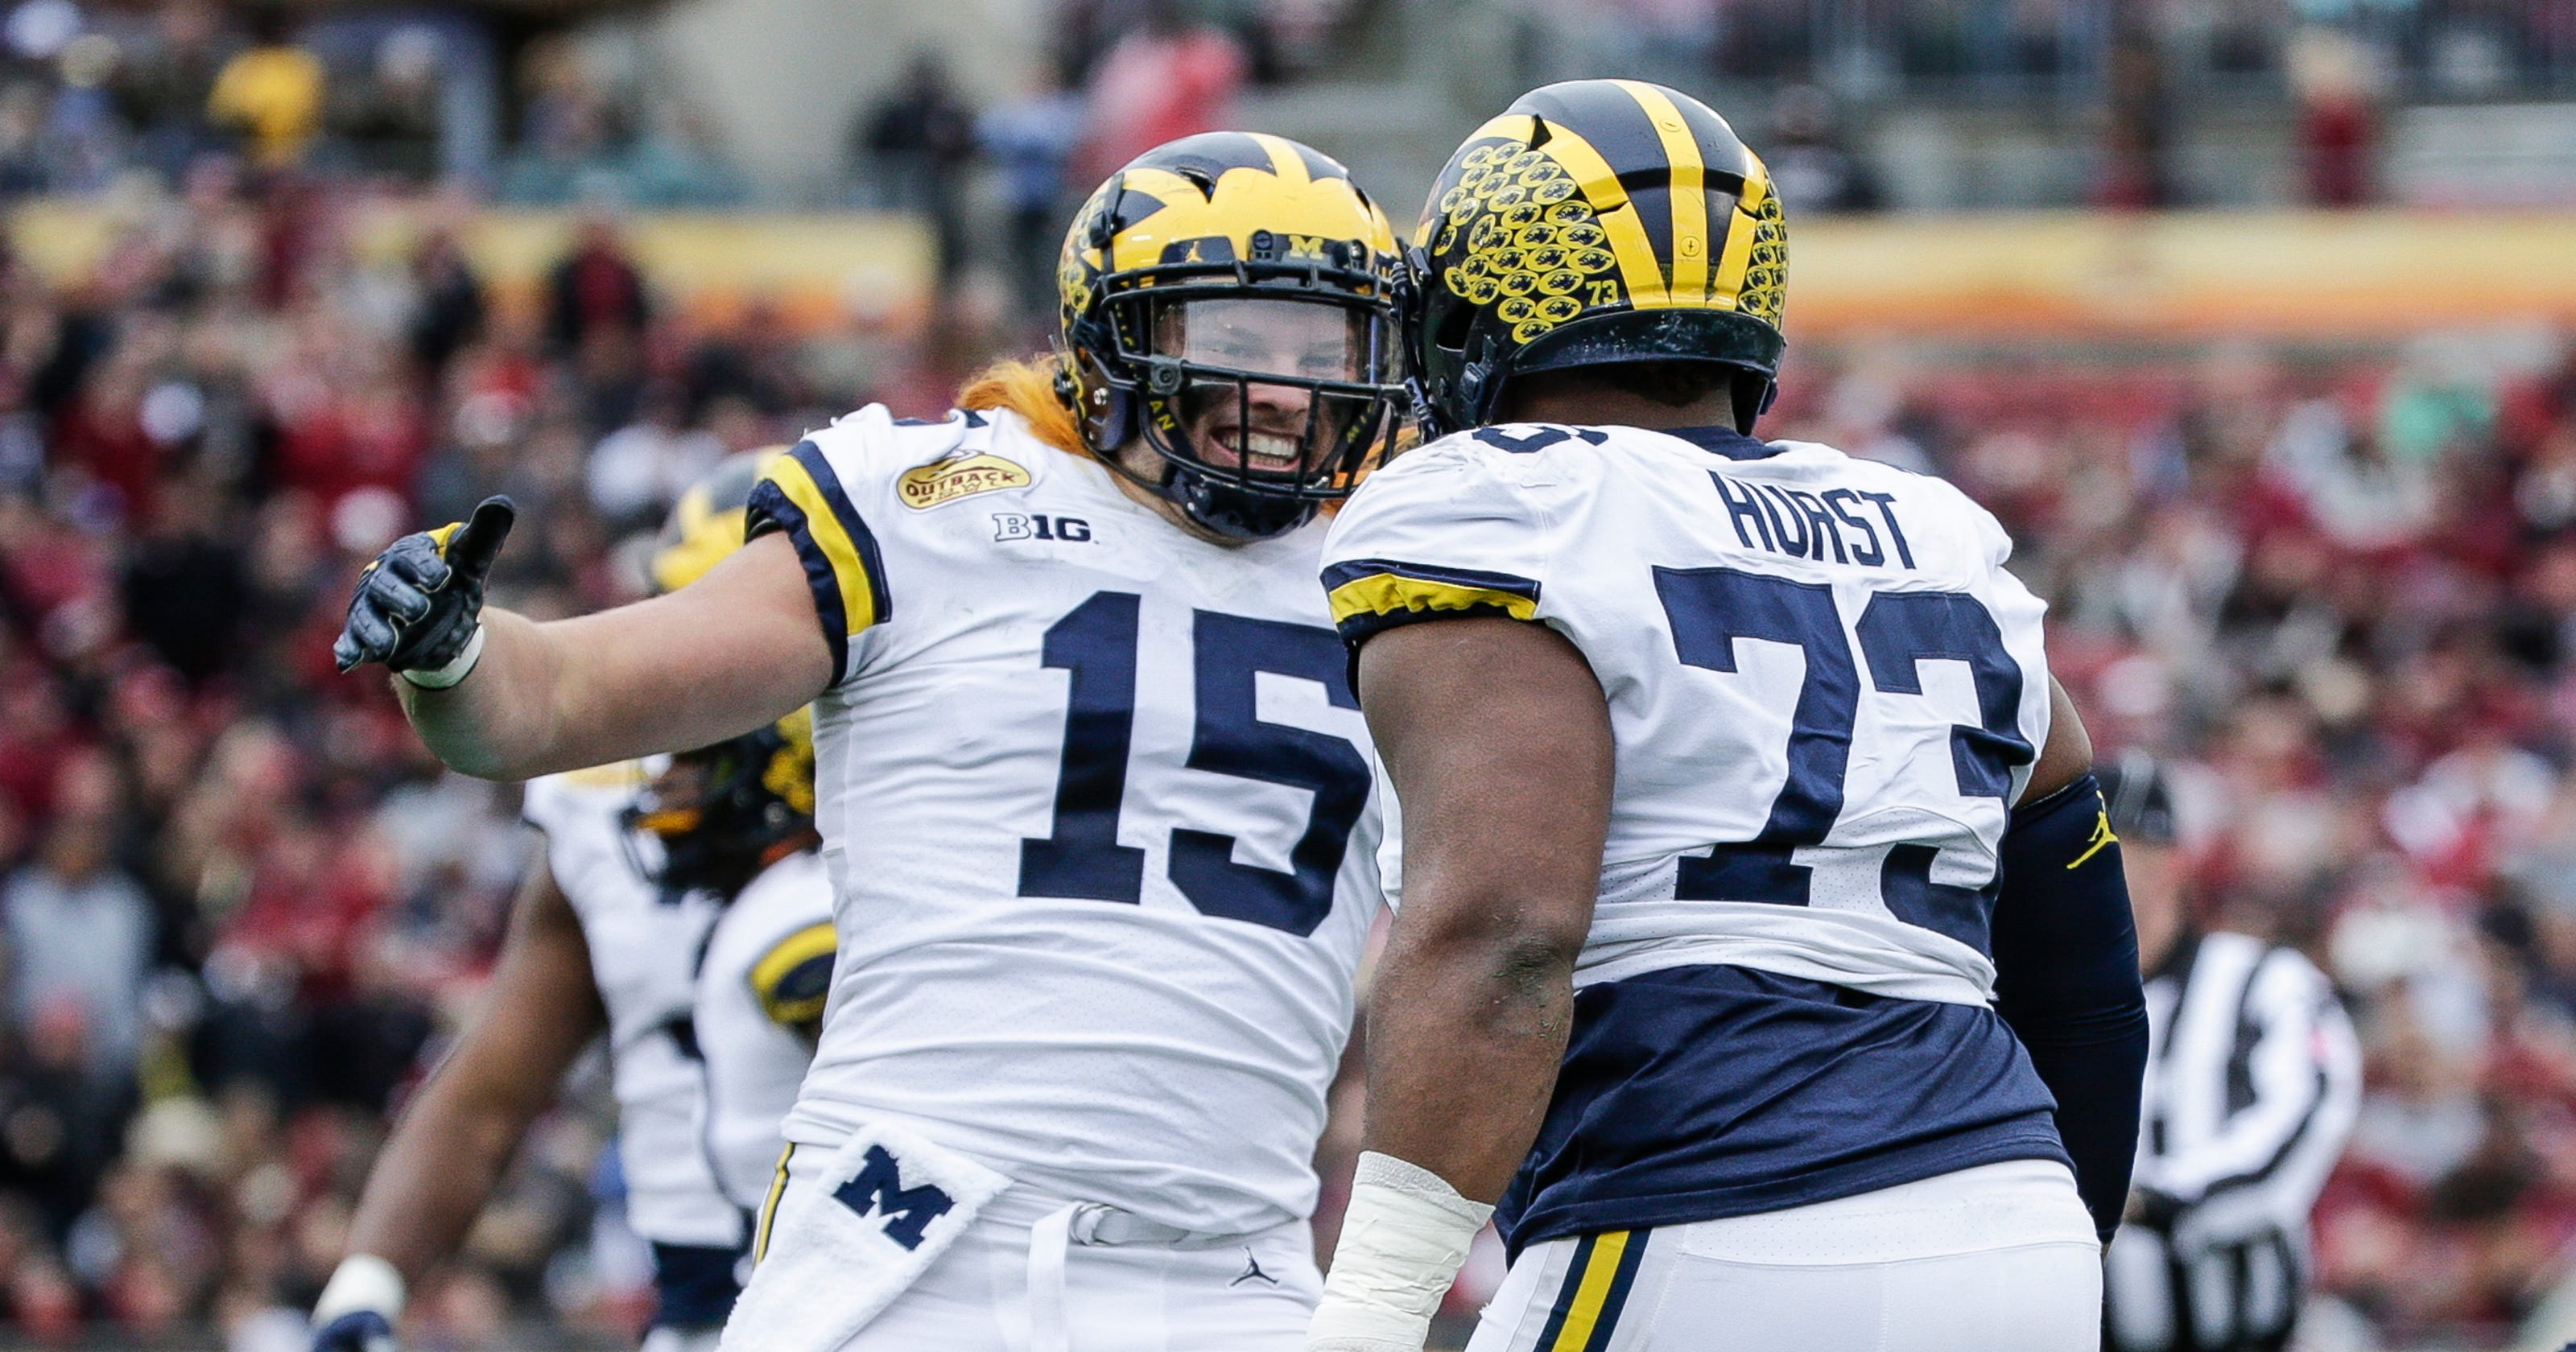 newest da4c0 17ce9 Michigan's Chase Winovich will return for fifth season